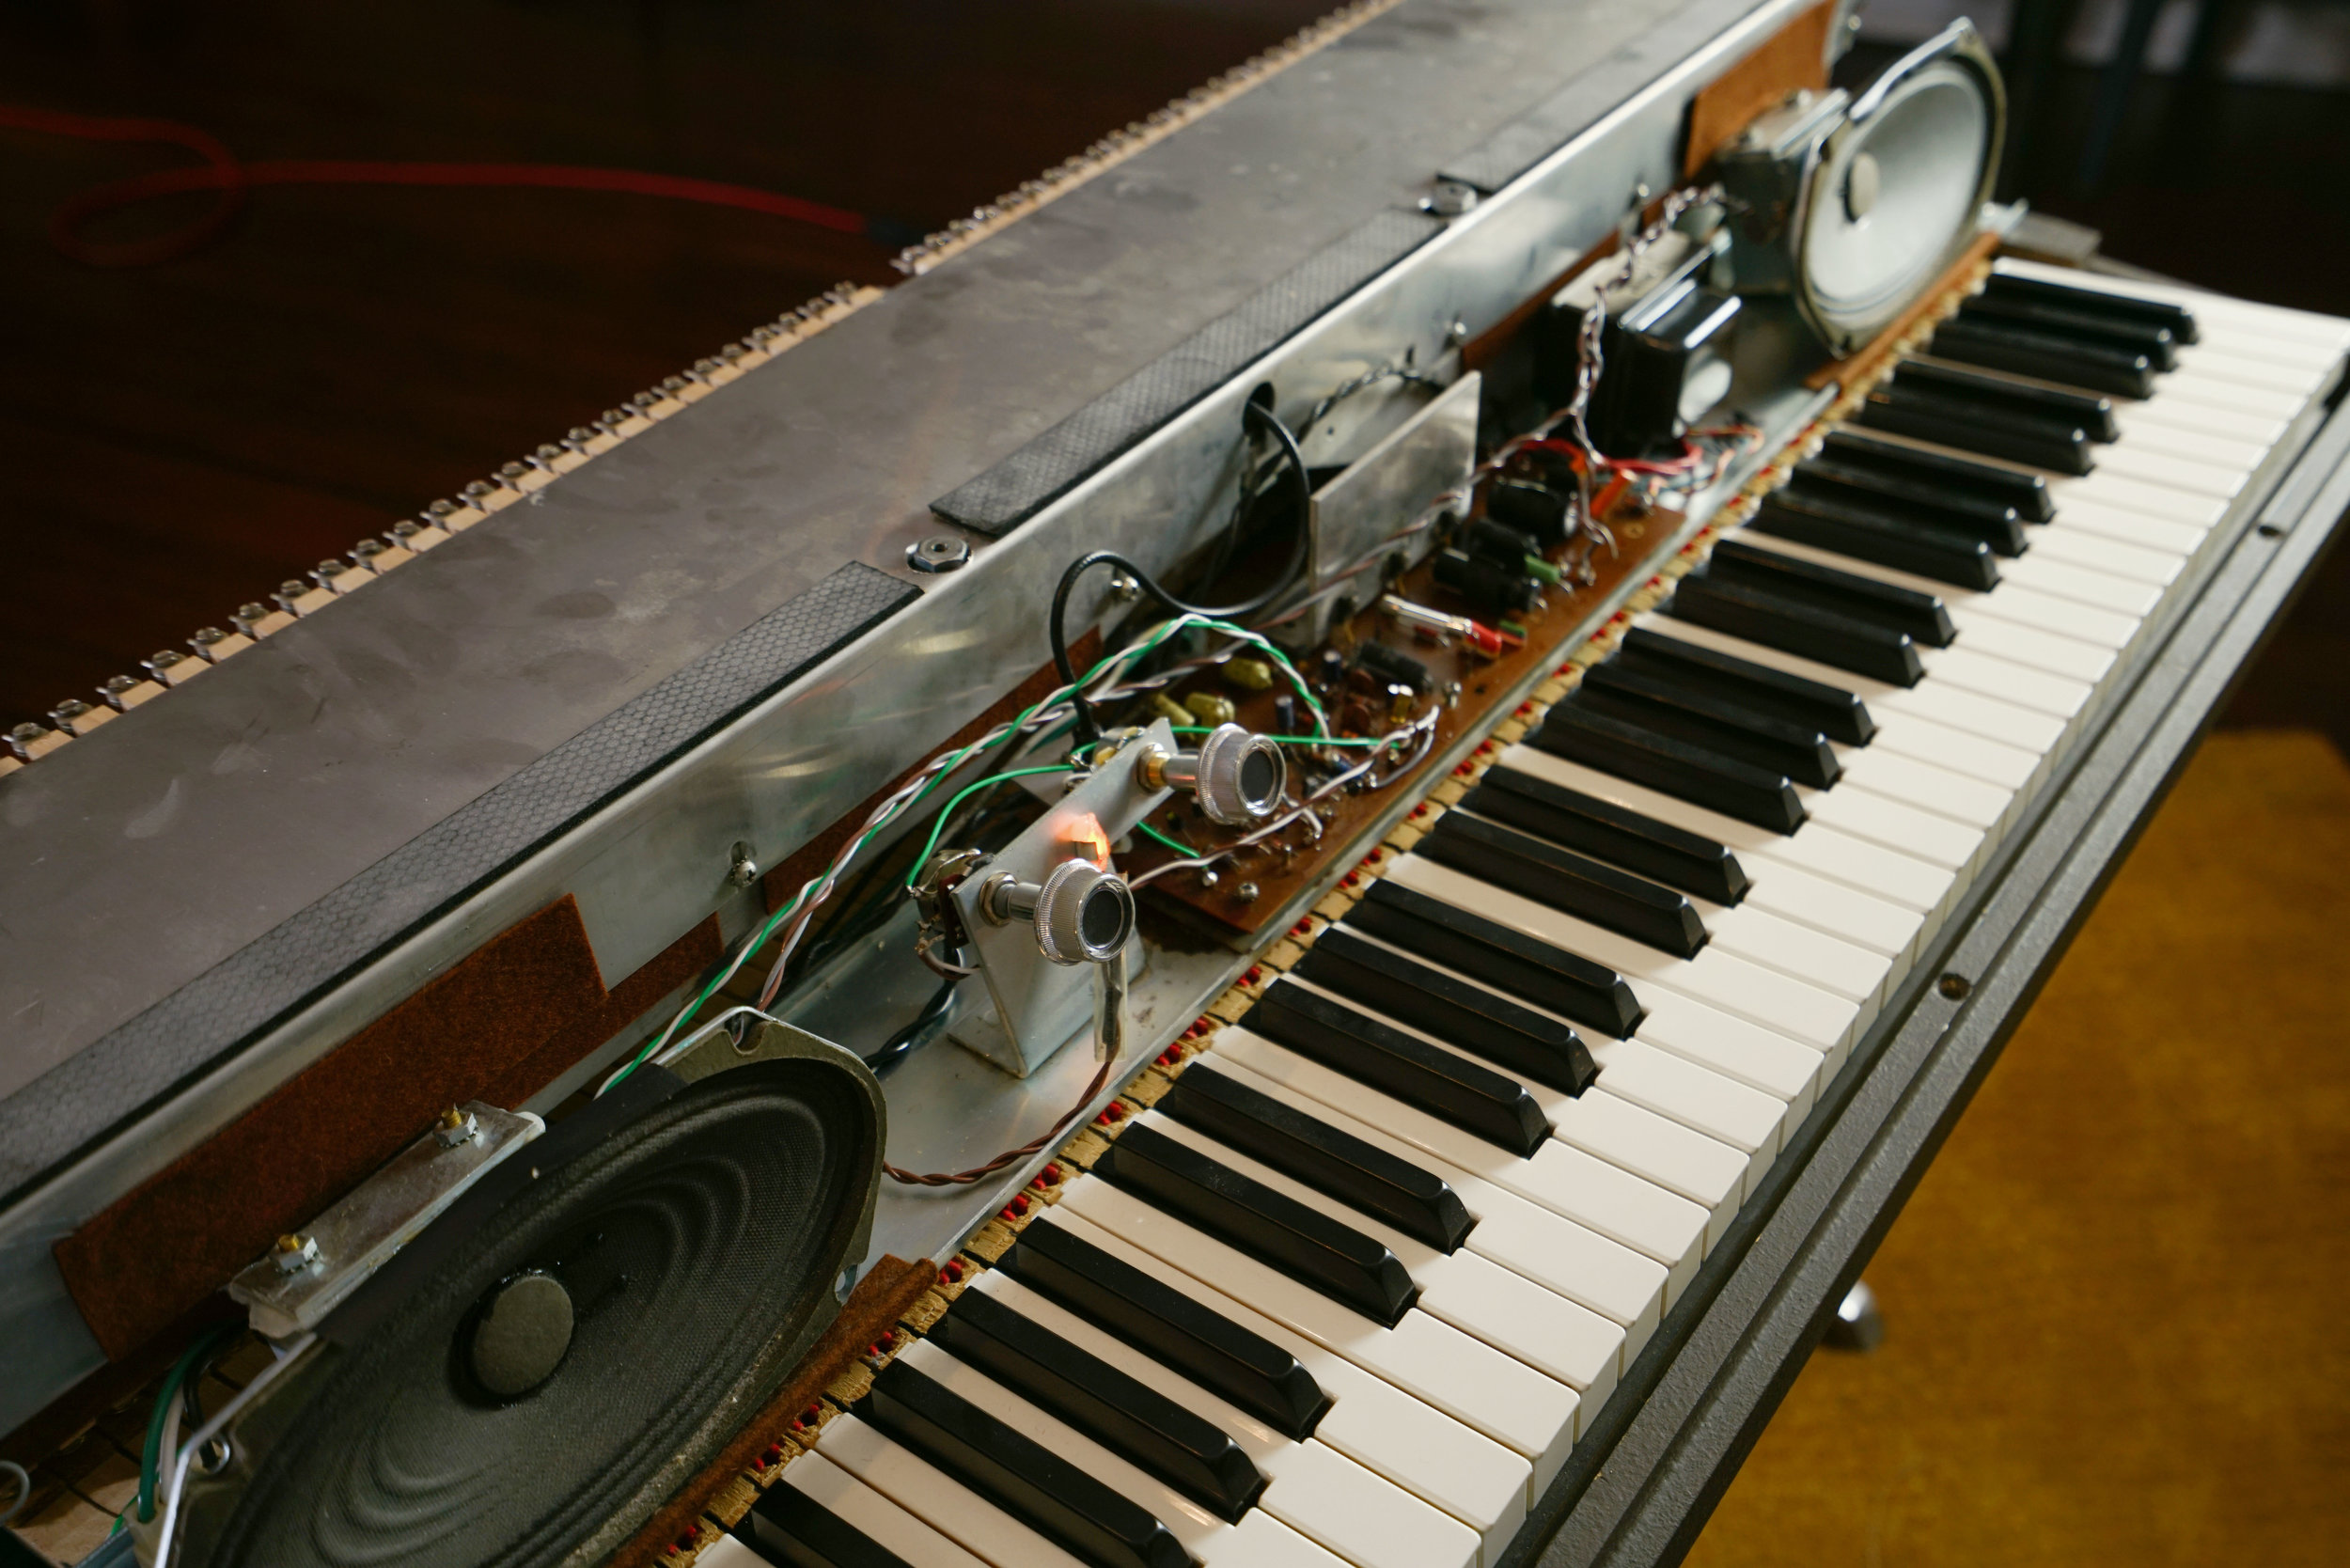 This Wurlitzer 200 has a different physical layout than the 140b, but it works under the same principles. The mechanical action is a little more compact, so that the amplifier can fit in the front of the keyboard.